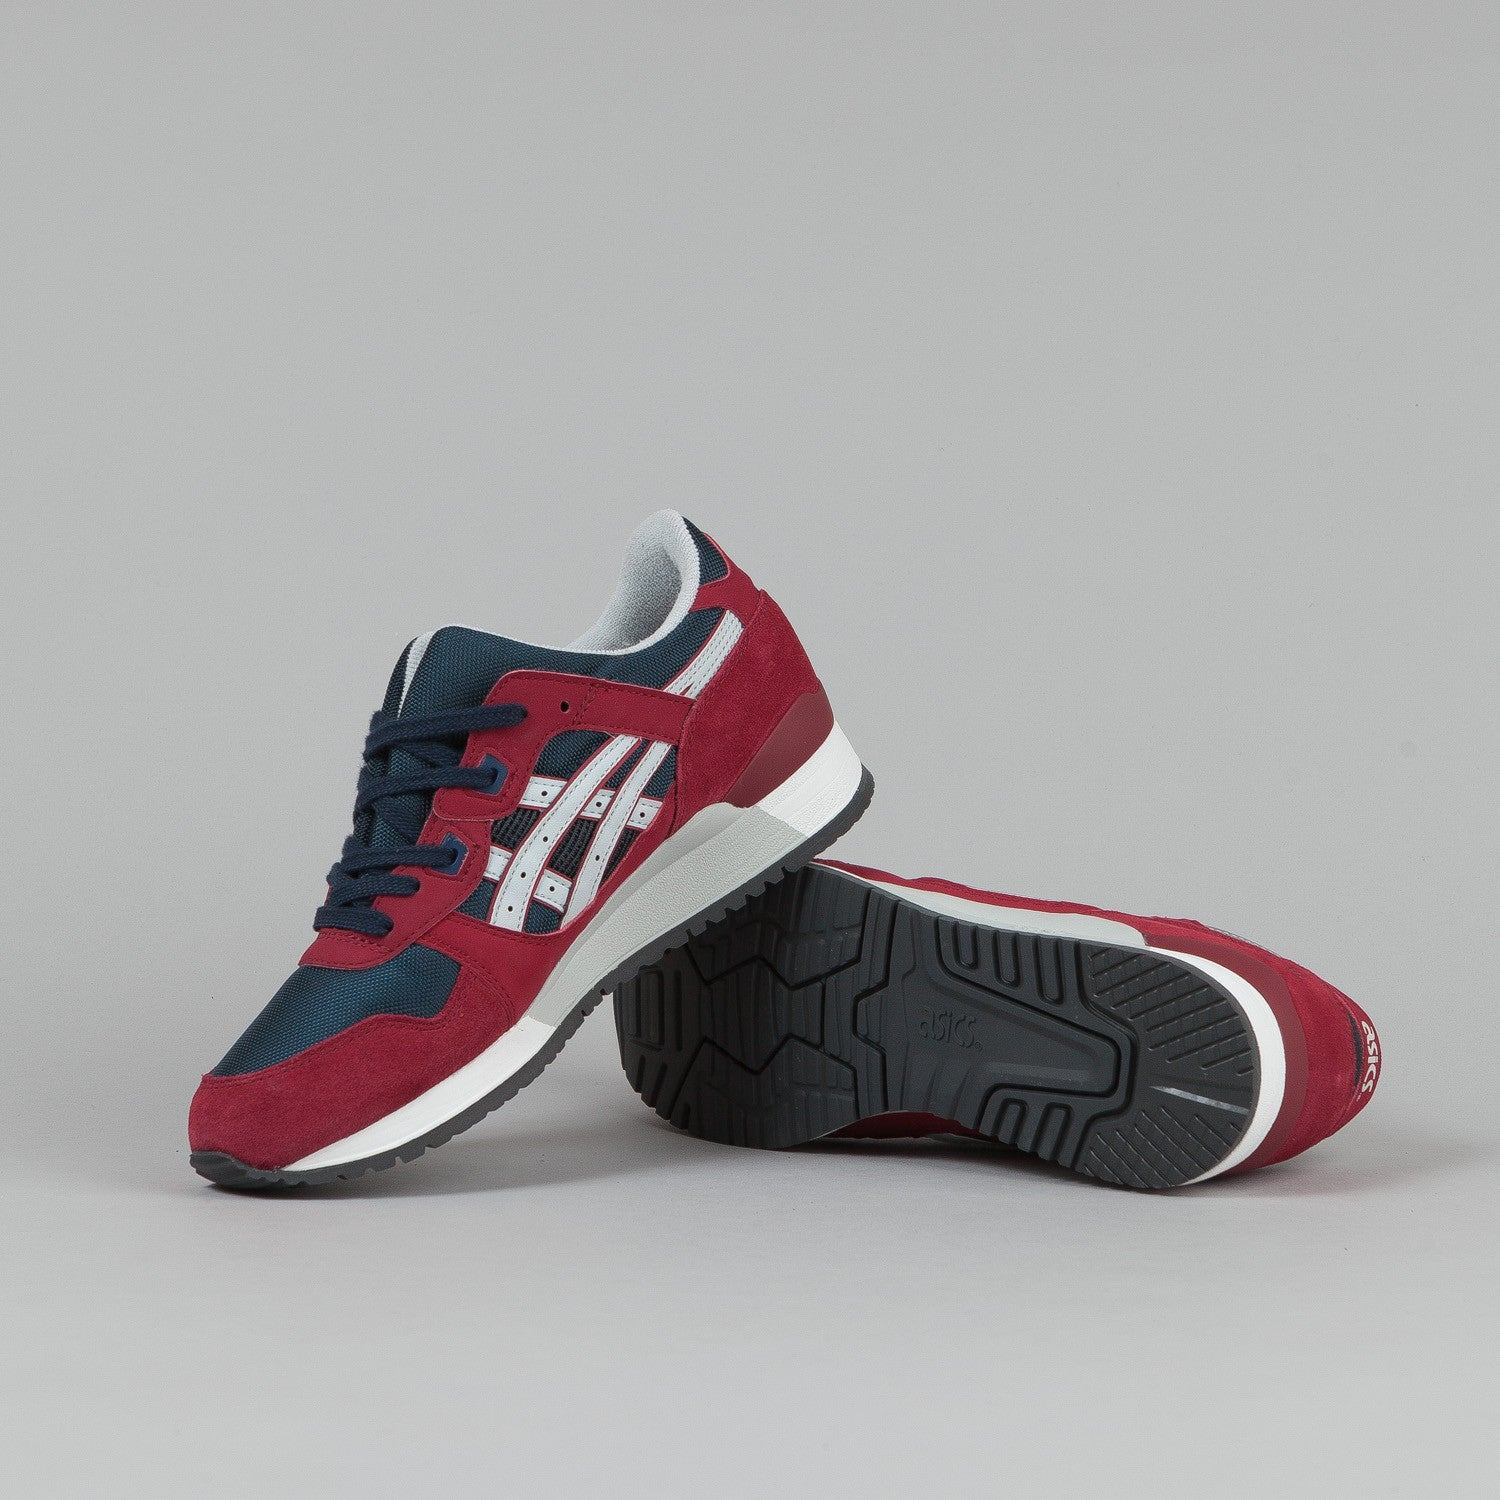 Asics Gel Lyte III Burgundy / Soft Grey